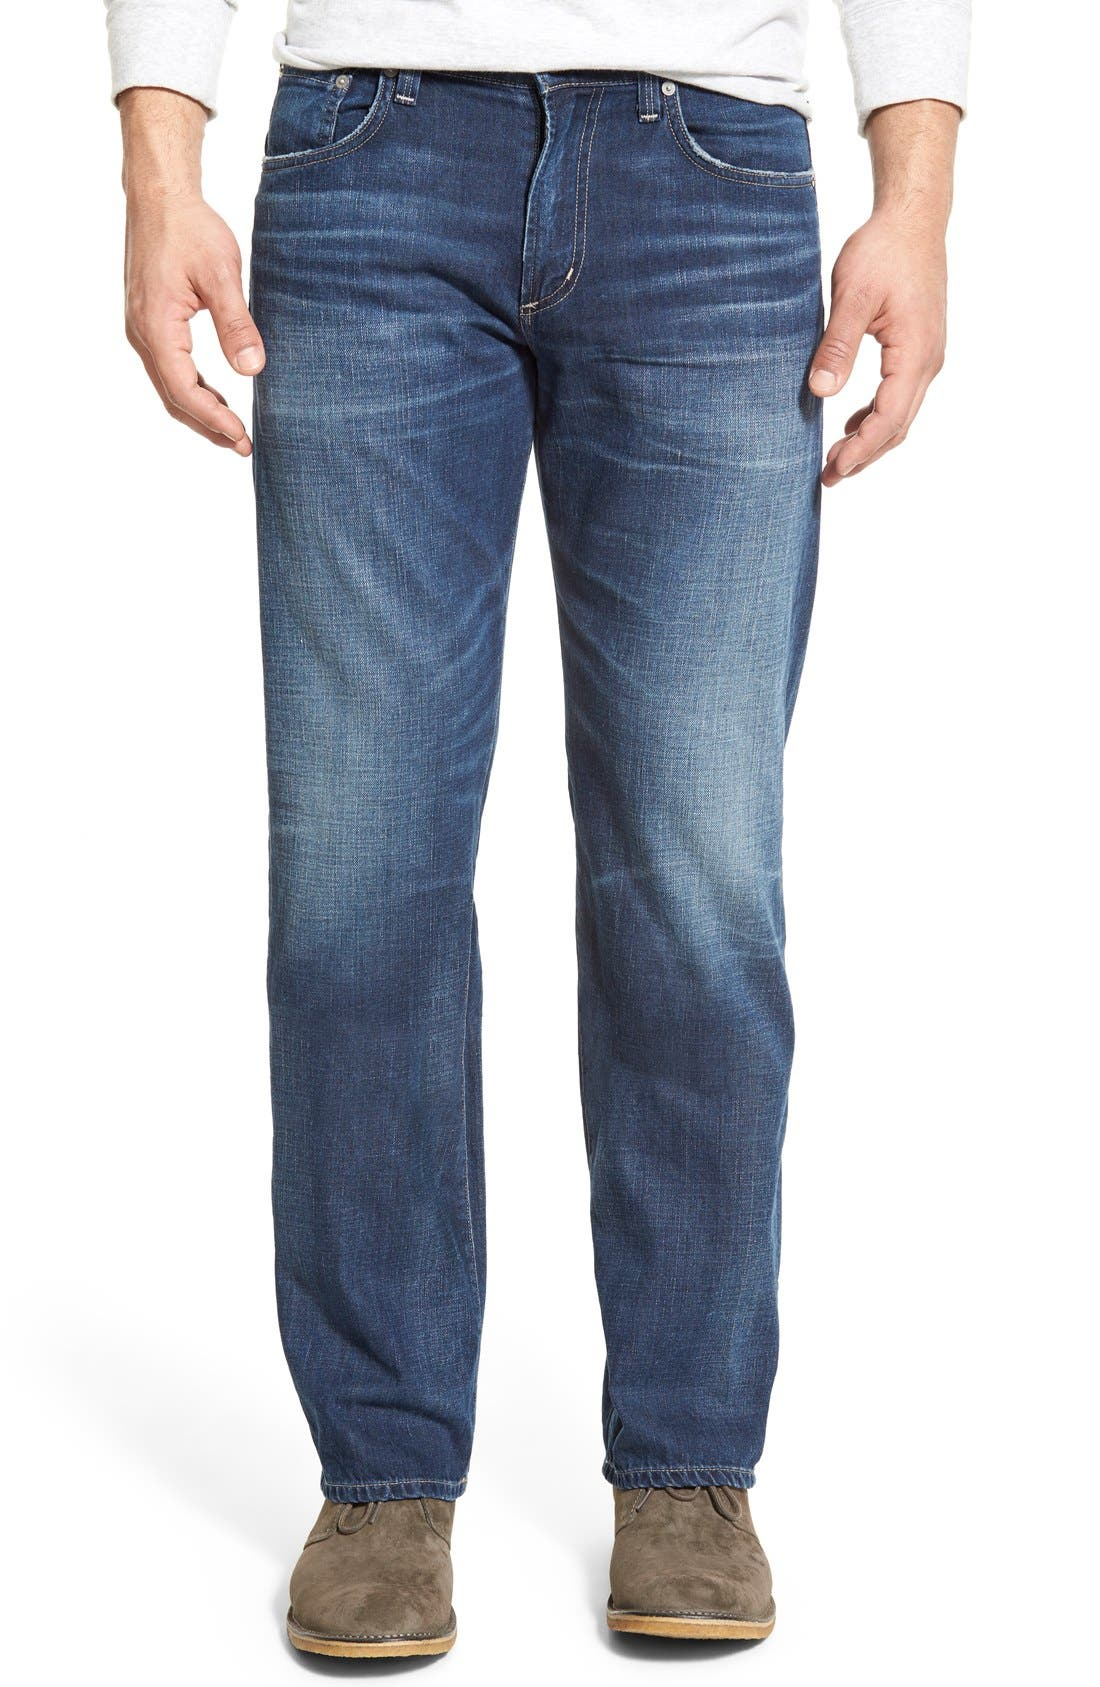 'Evans' Relaxed Fit Jeans,                             Main thumbnail 1, color,                             DERBY